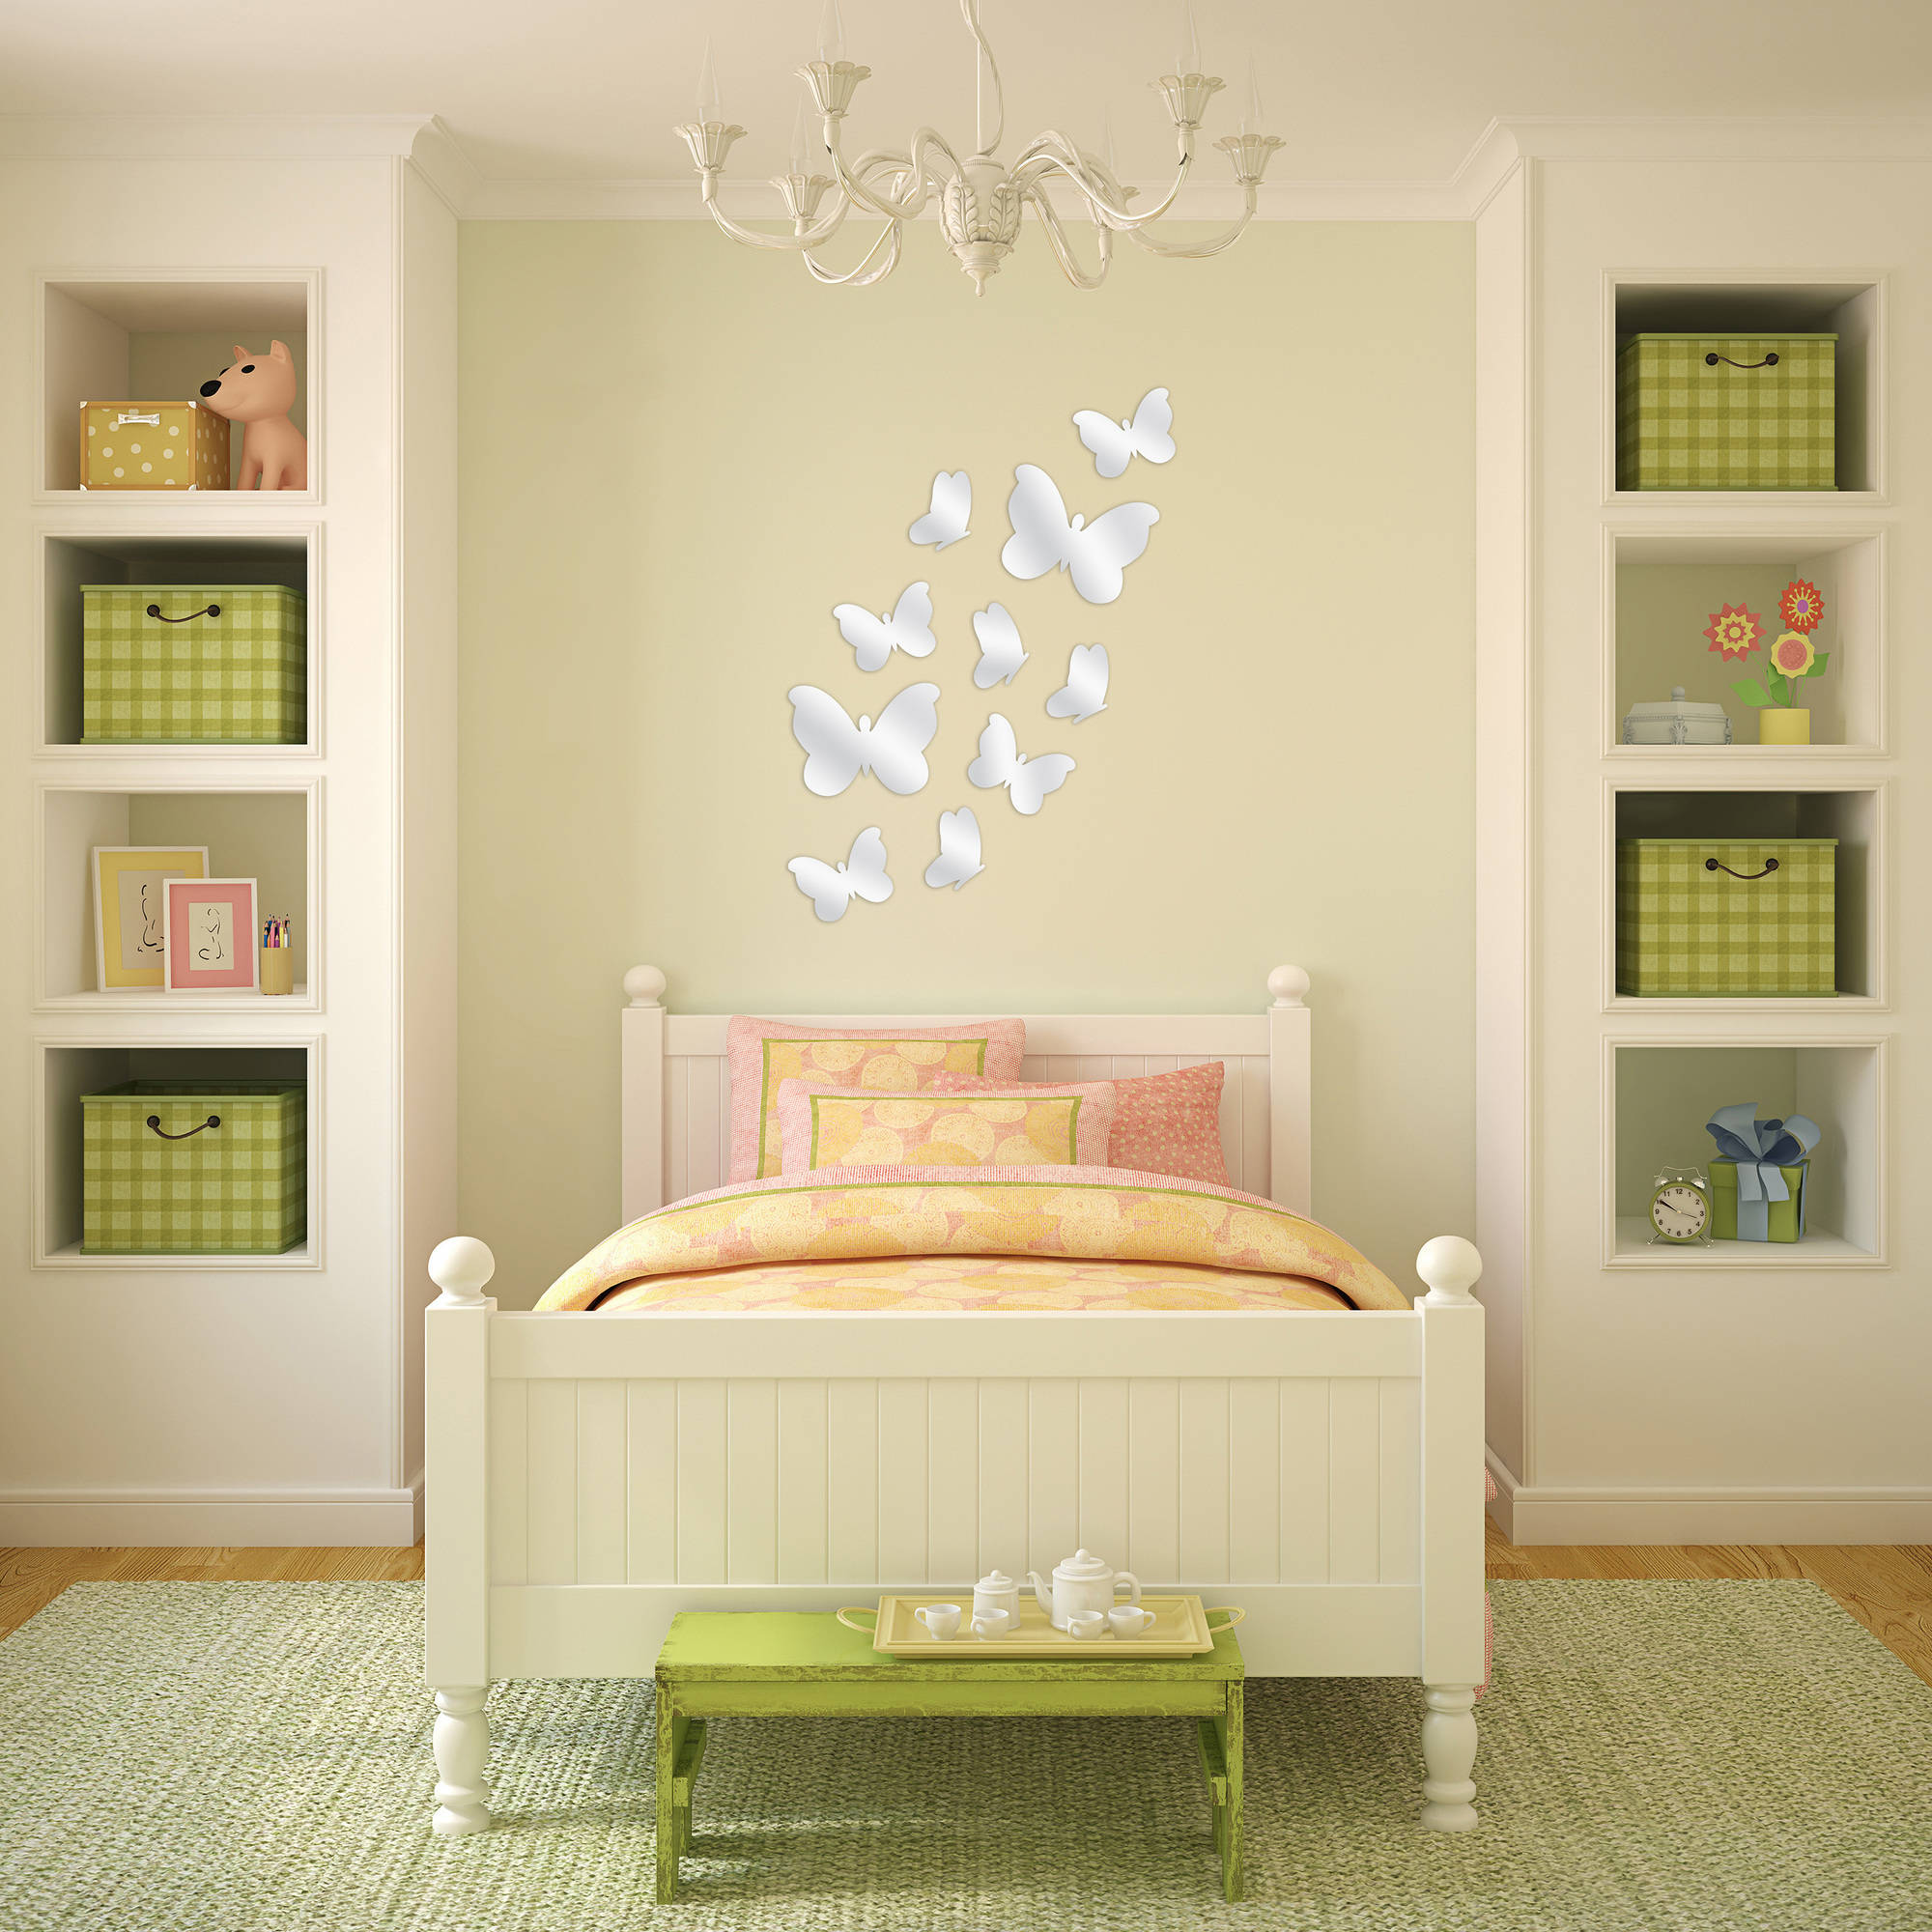 Better Homes and Gardens 10-Piece Butterfly Peel and Stick Mirror Set